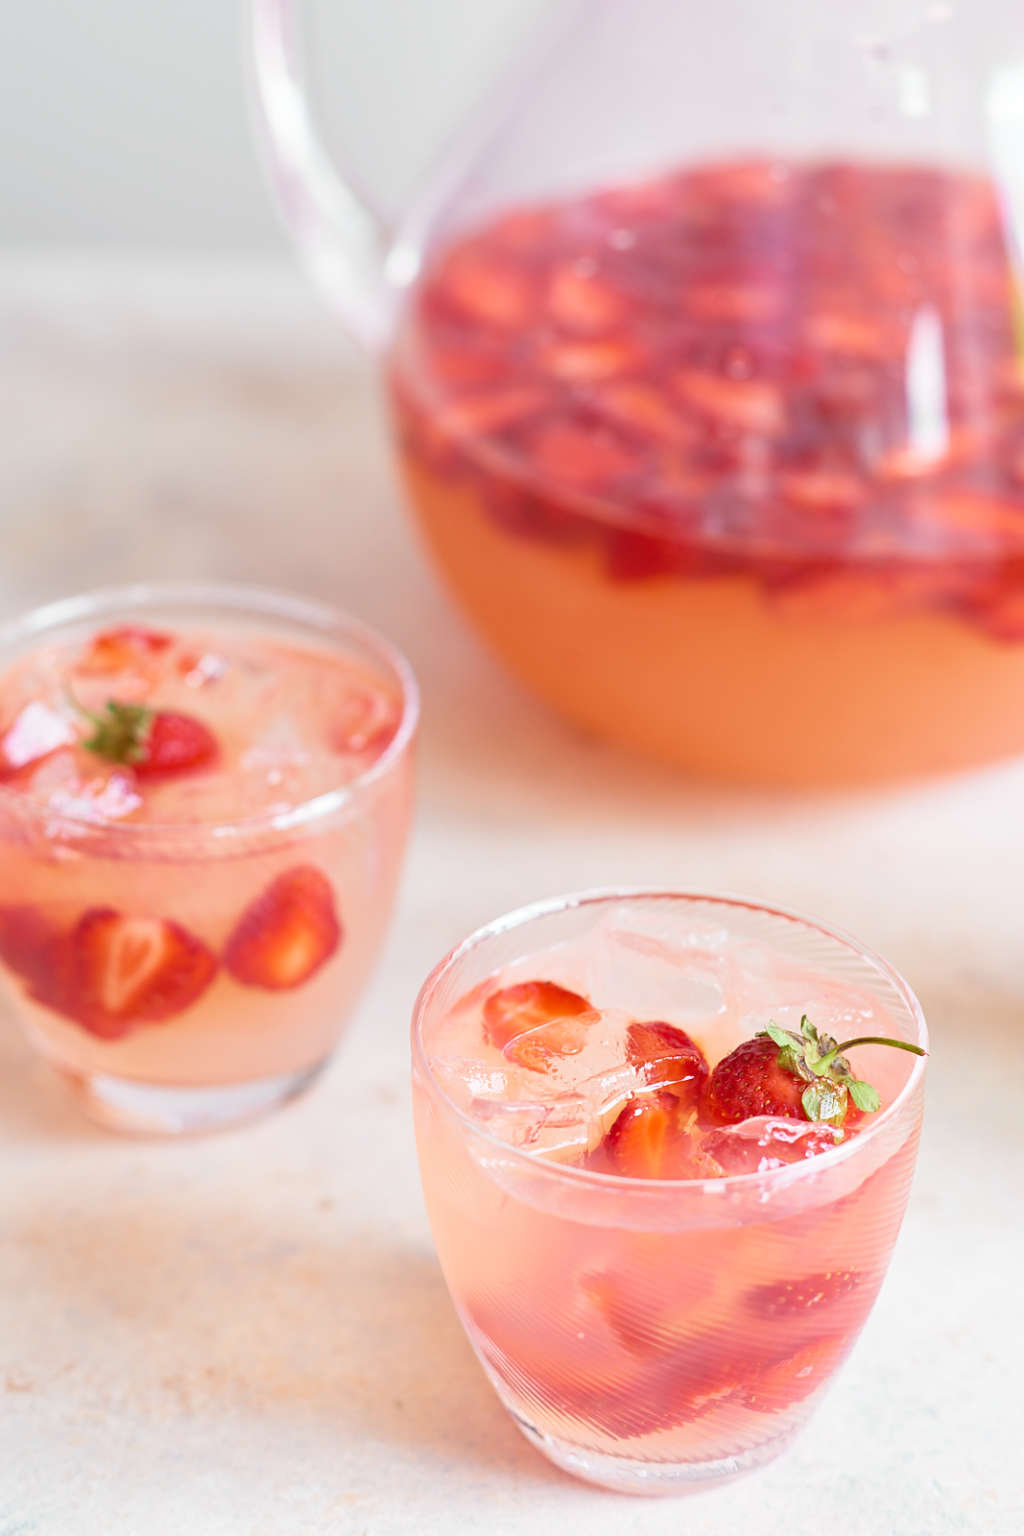 A Spiked Strawberry Lemonade for Happy Hour at Home